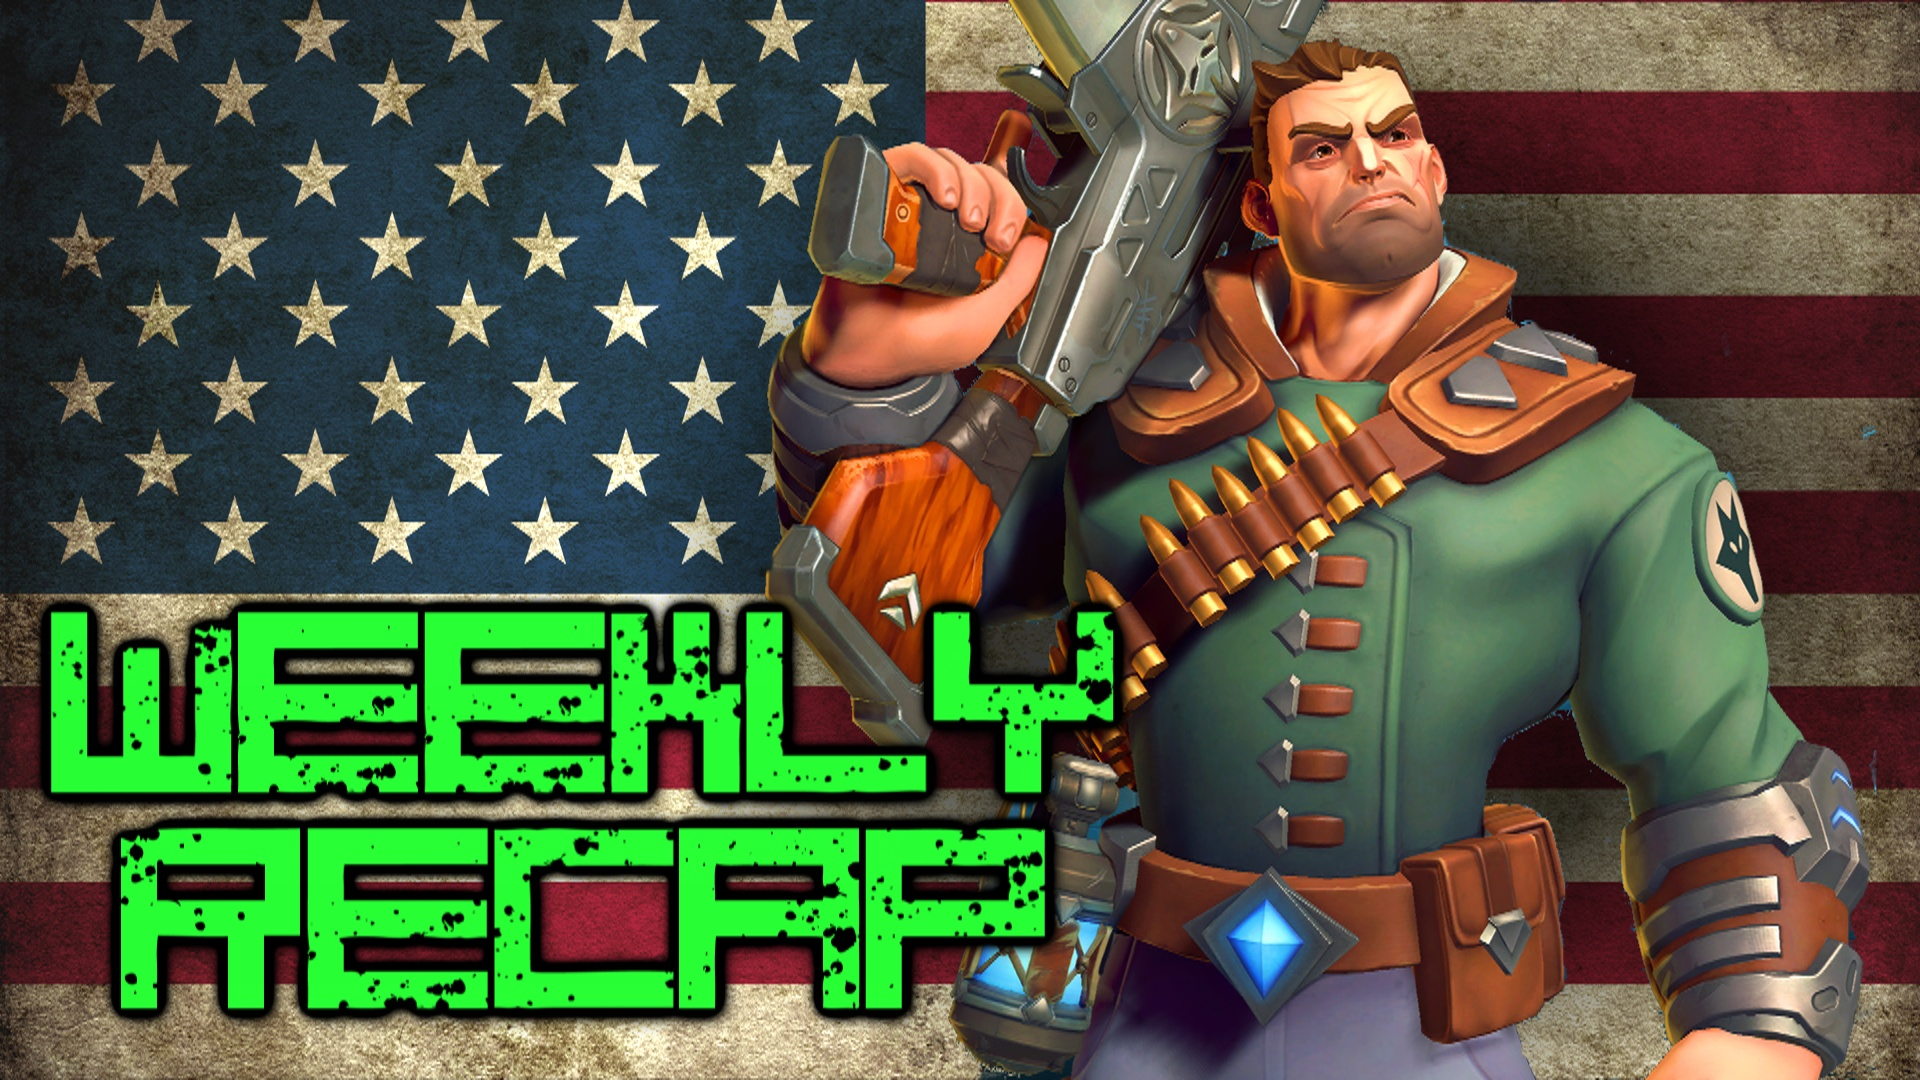 MMOHuts Weekly Recap #297 July 4th - Overwatch, Paladins, Black Desert & More!